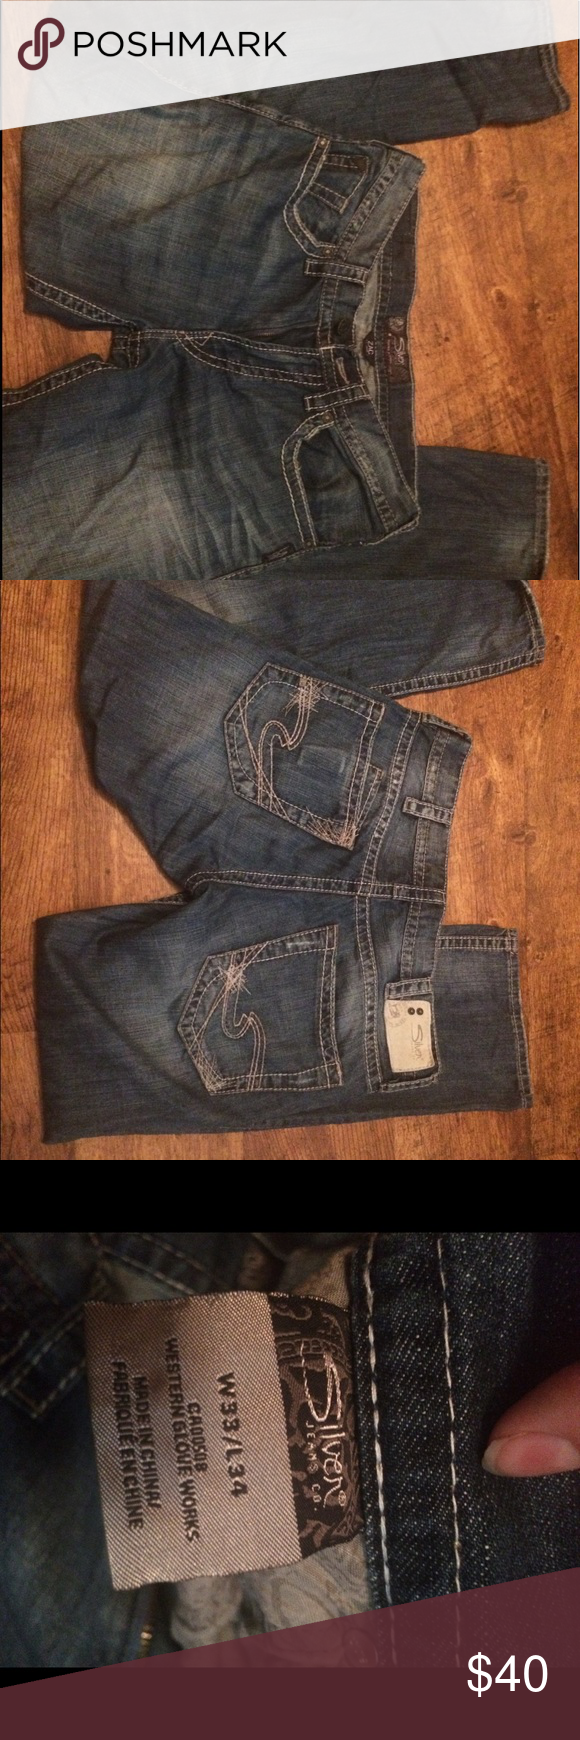 Men's silver jeans Perfect condition just didn't fit my boyfriend Silver Jeans Jeans #myposhpicks